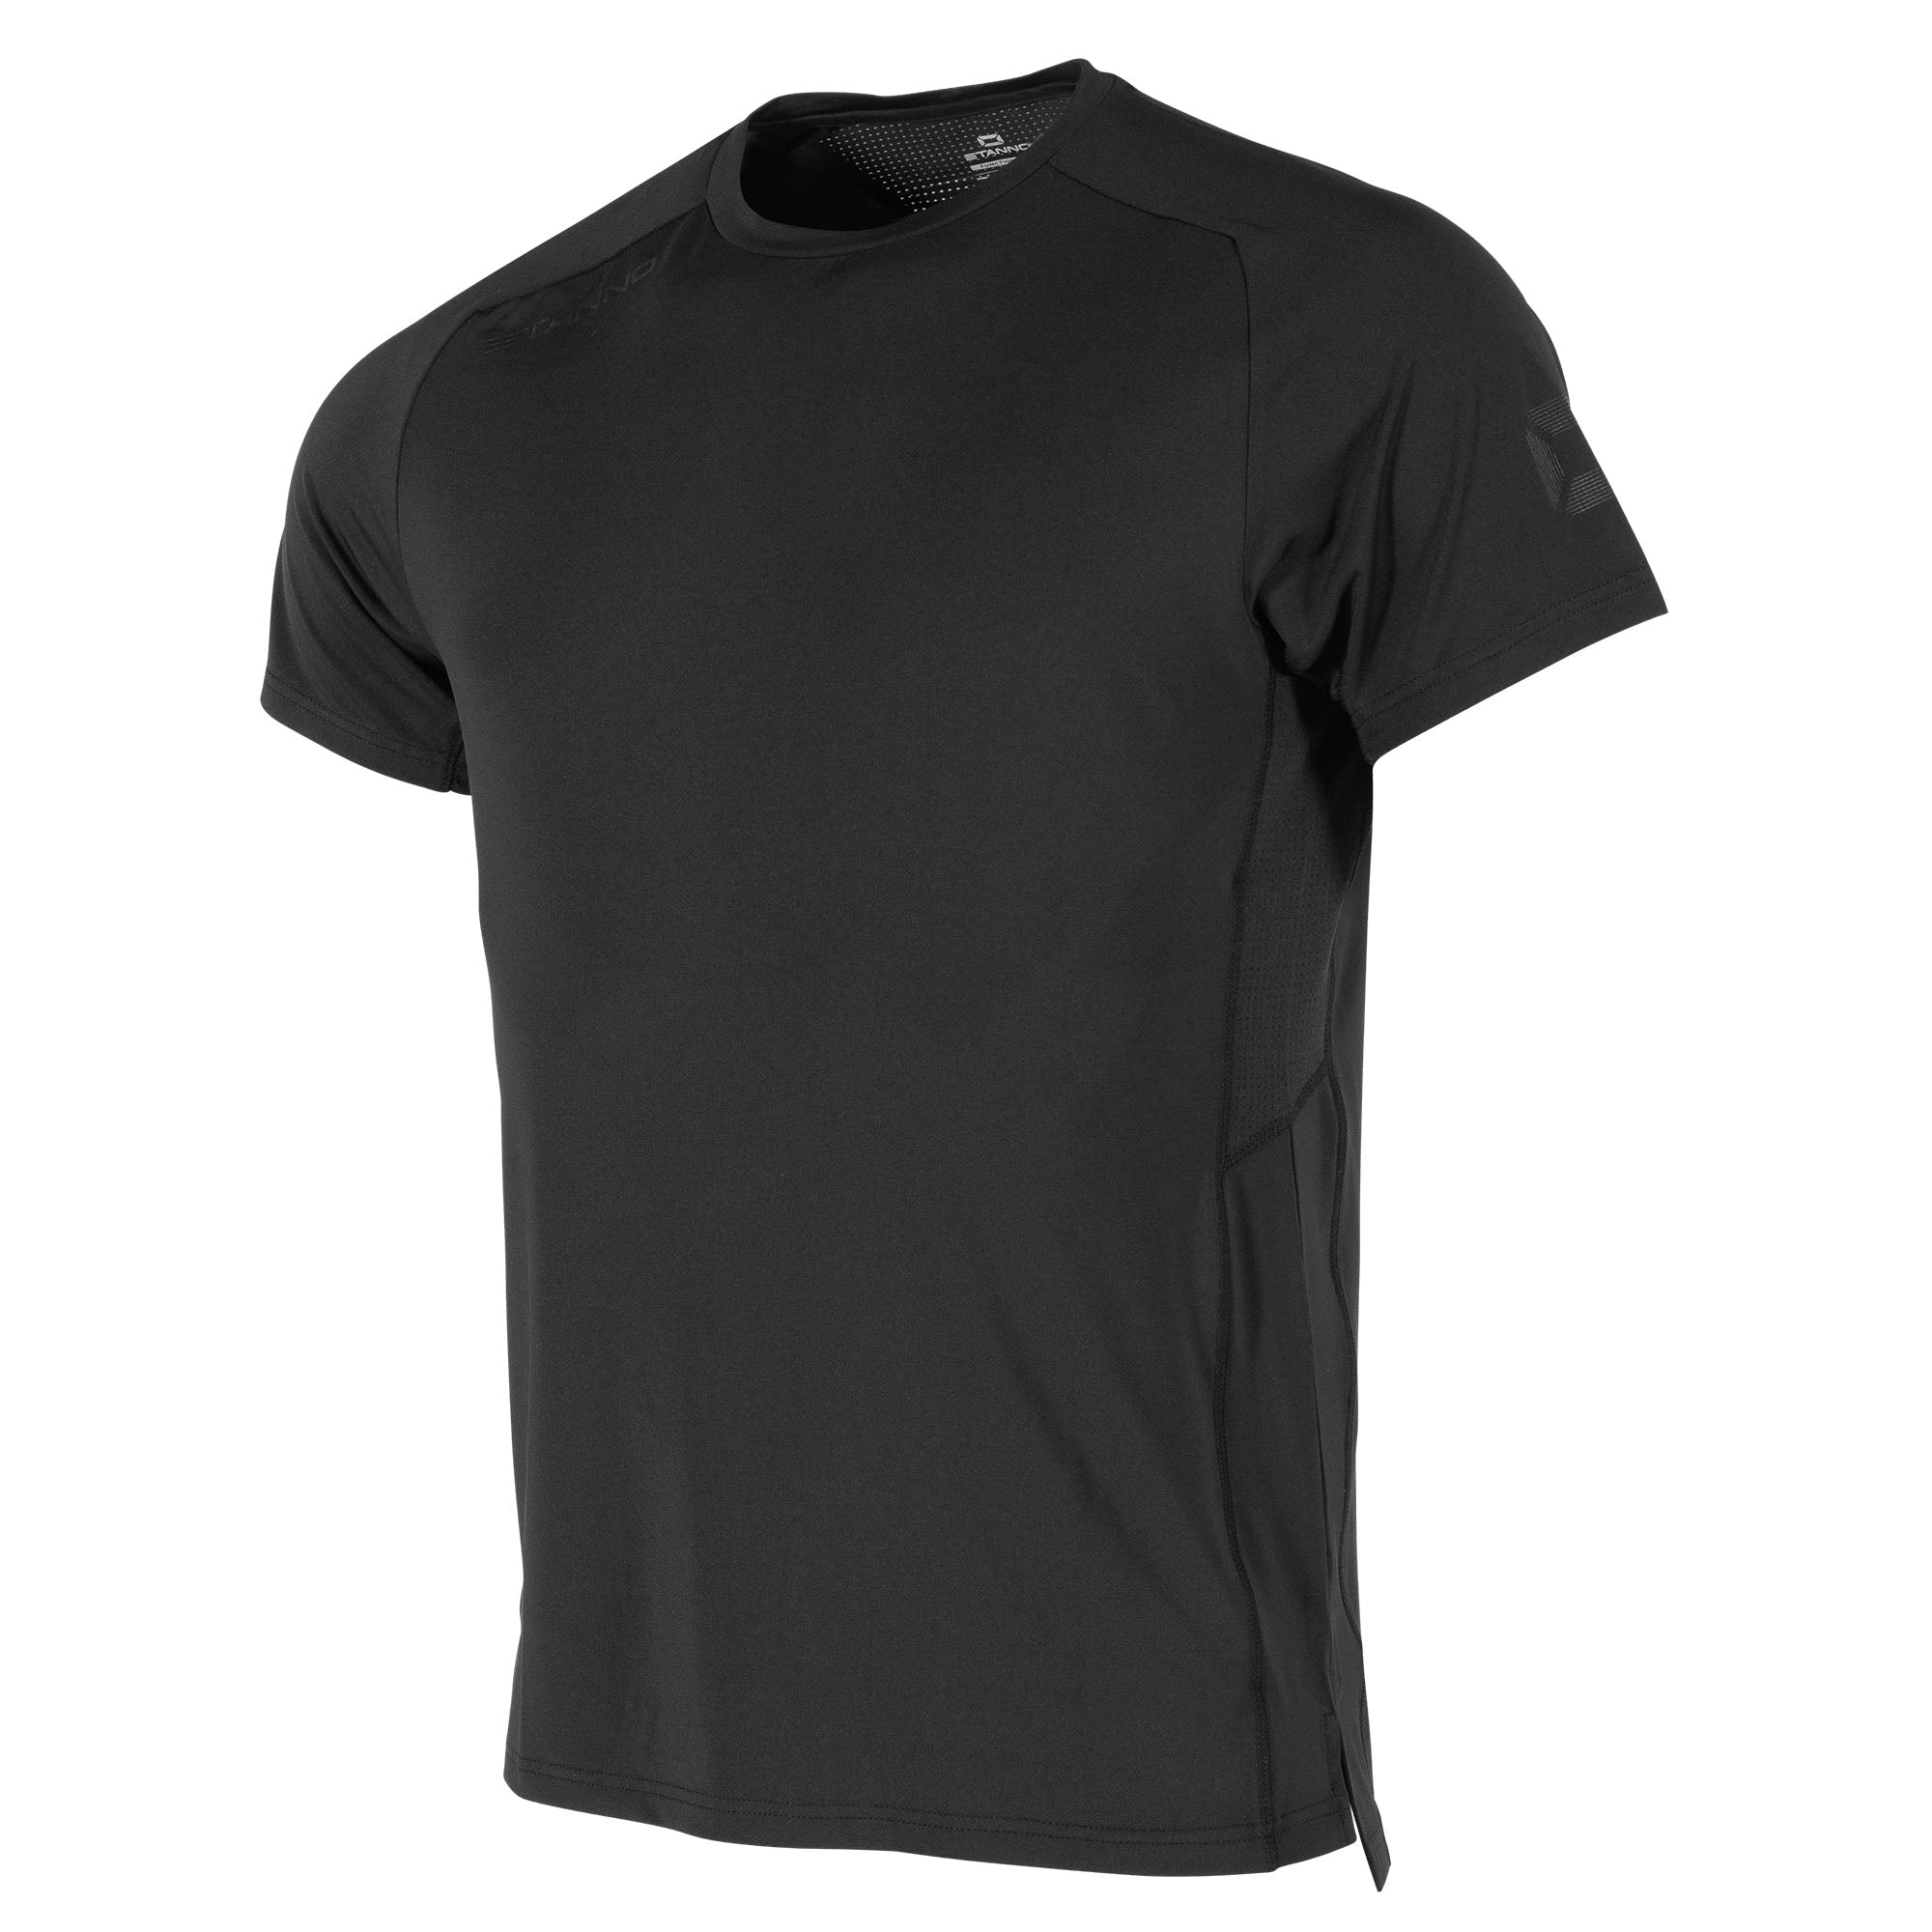 Front view of black Stanno Functionals Training Tee with raglan sleeve, and subtle Stanno Stadium logo.